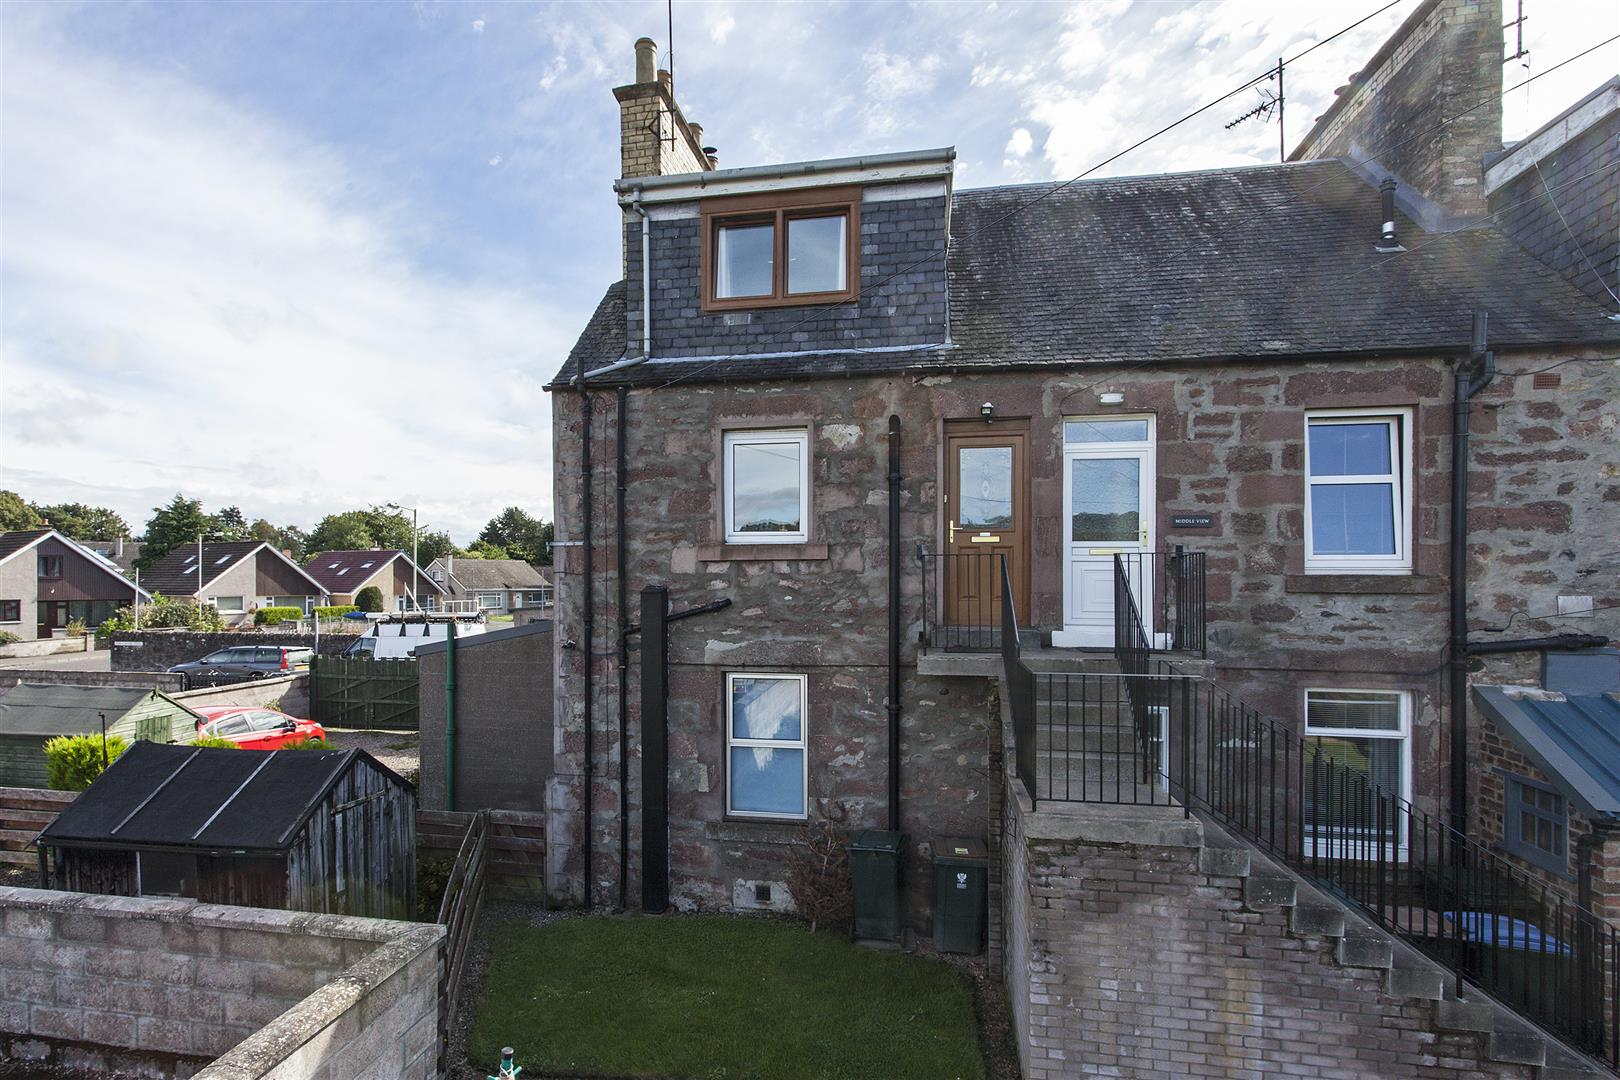 8, Coral Bank Terrace, Rattray, Blairgowrie, Perthshire, PH10 7EJ, UK